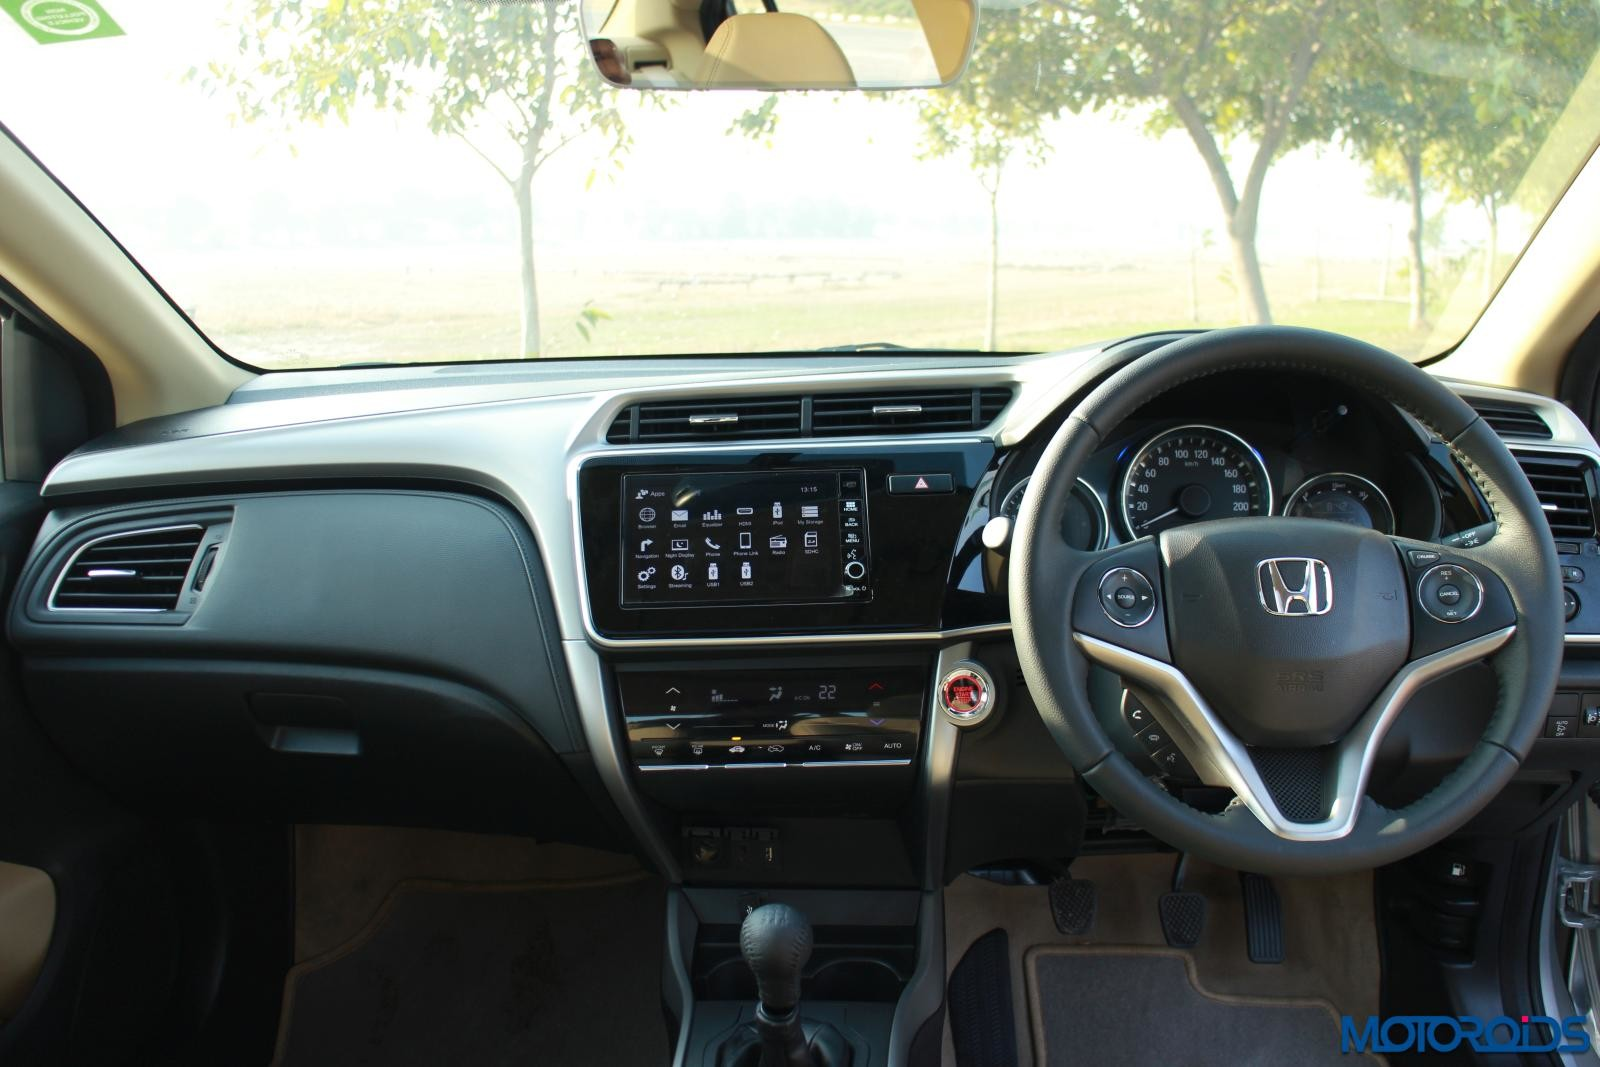 February 16, 2017-2017-Honda-City-Review-38.jpg